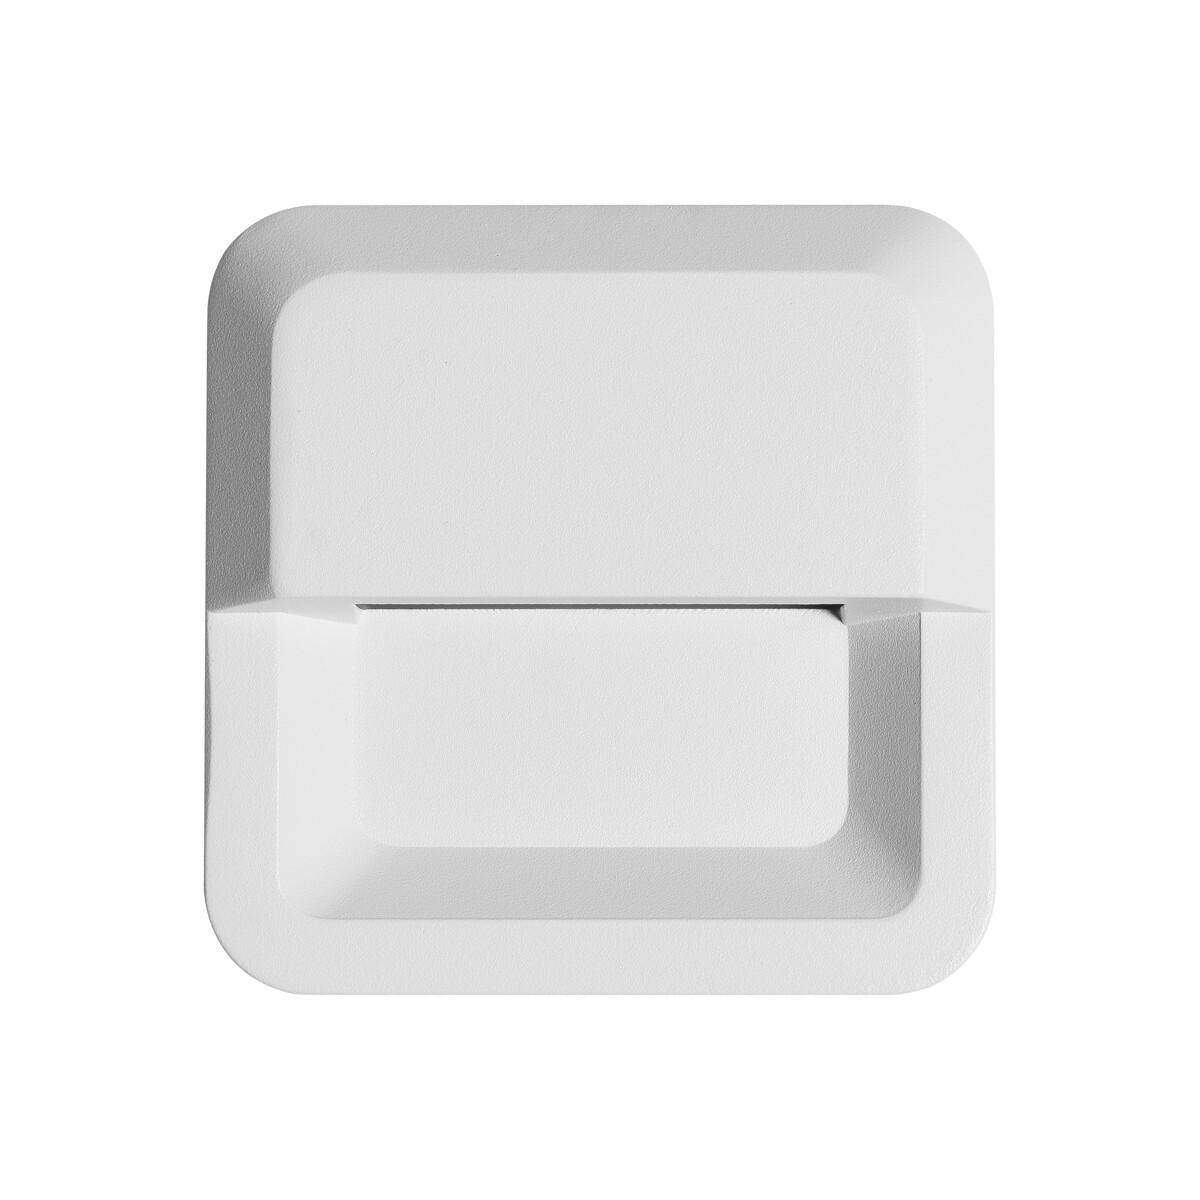 ALCOR Wall-mounted luminaire 3W 250lm White